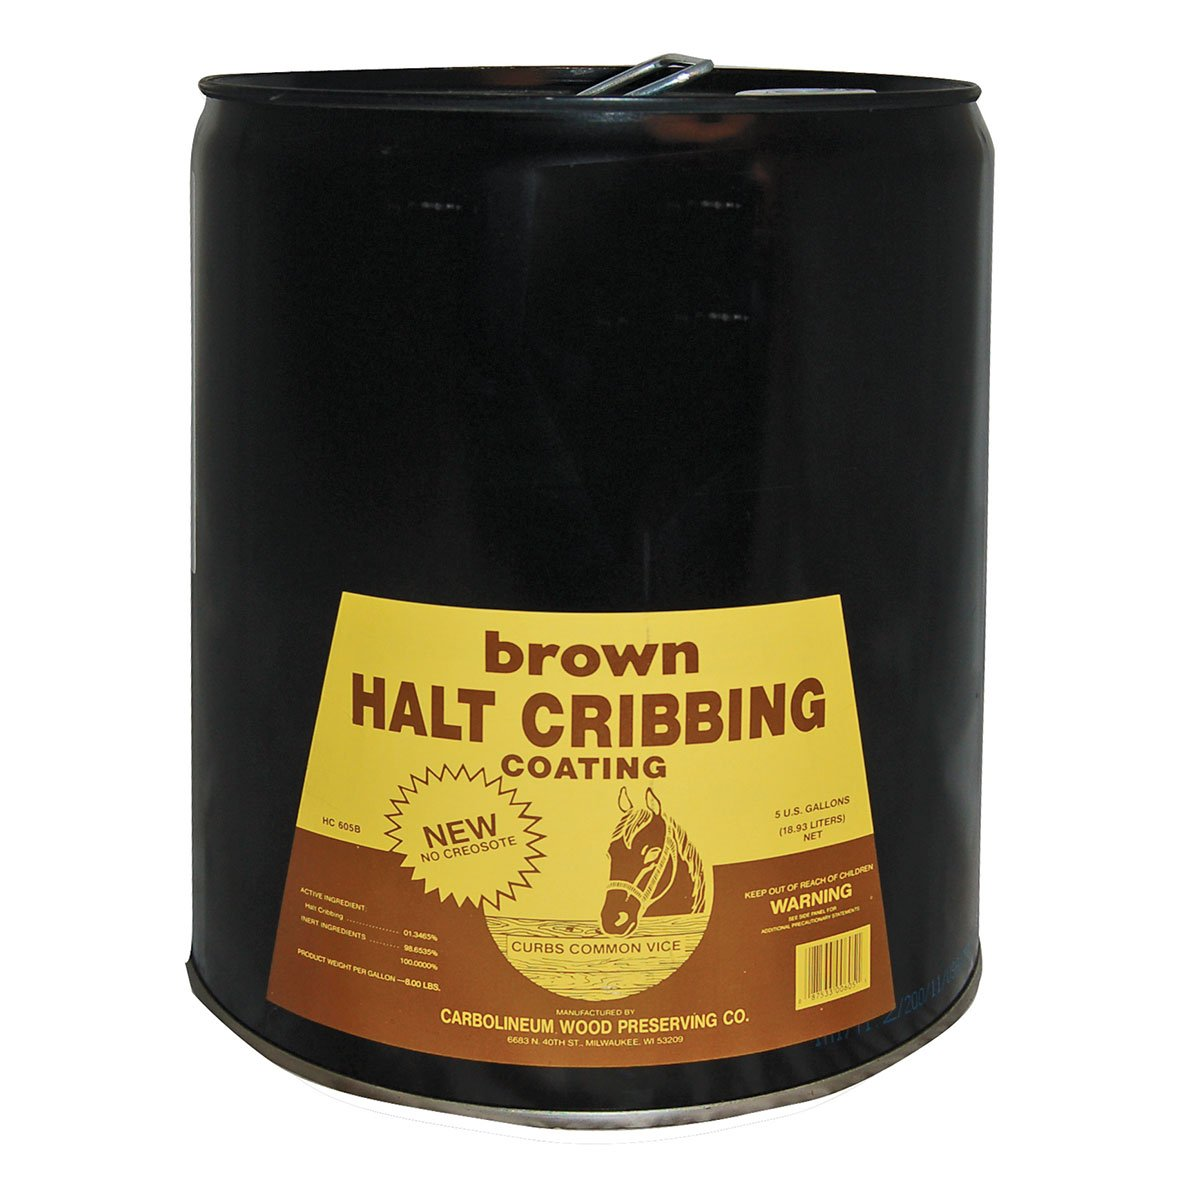 Brown Halt Cribbing, 5 Gallons